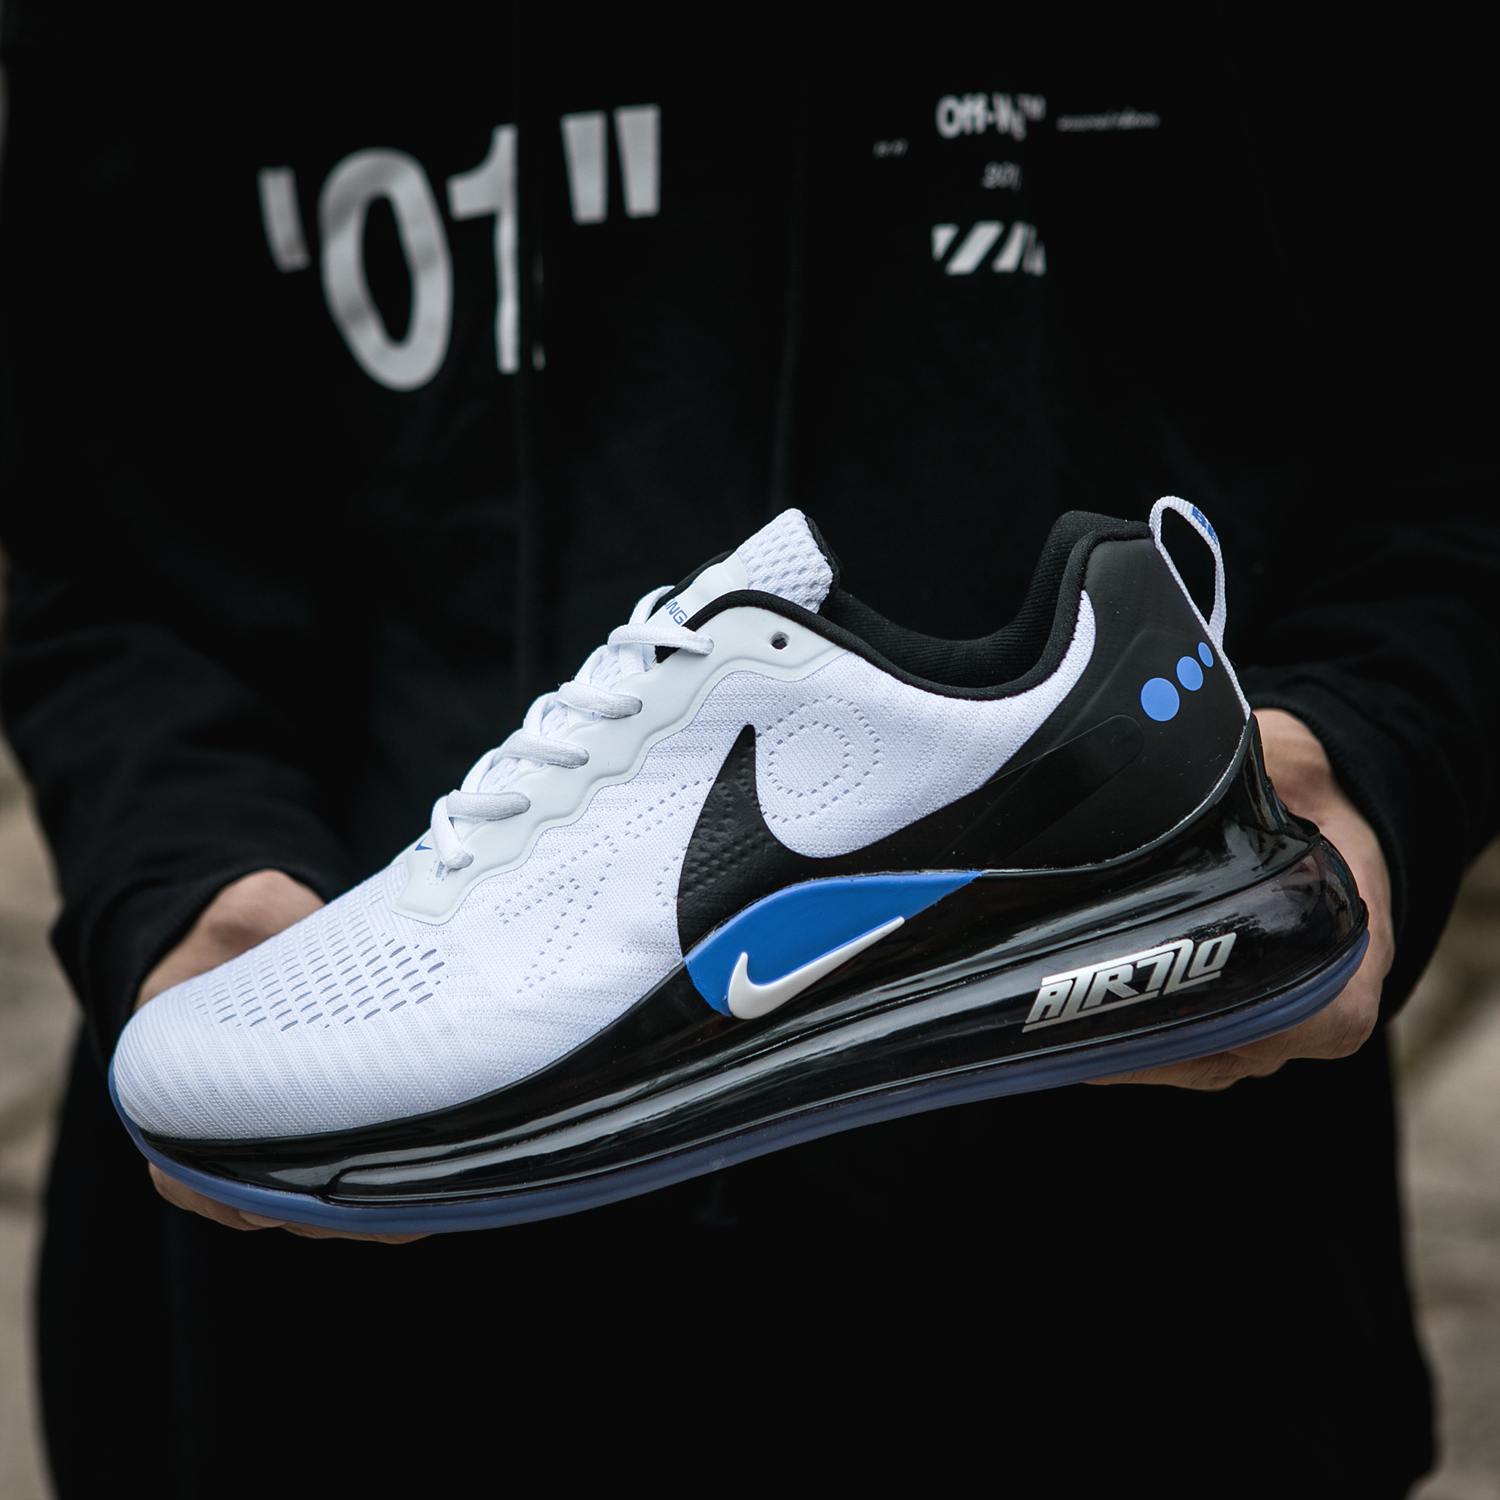 2020 Nike Air Max 720 White Black Jade